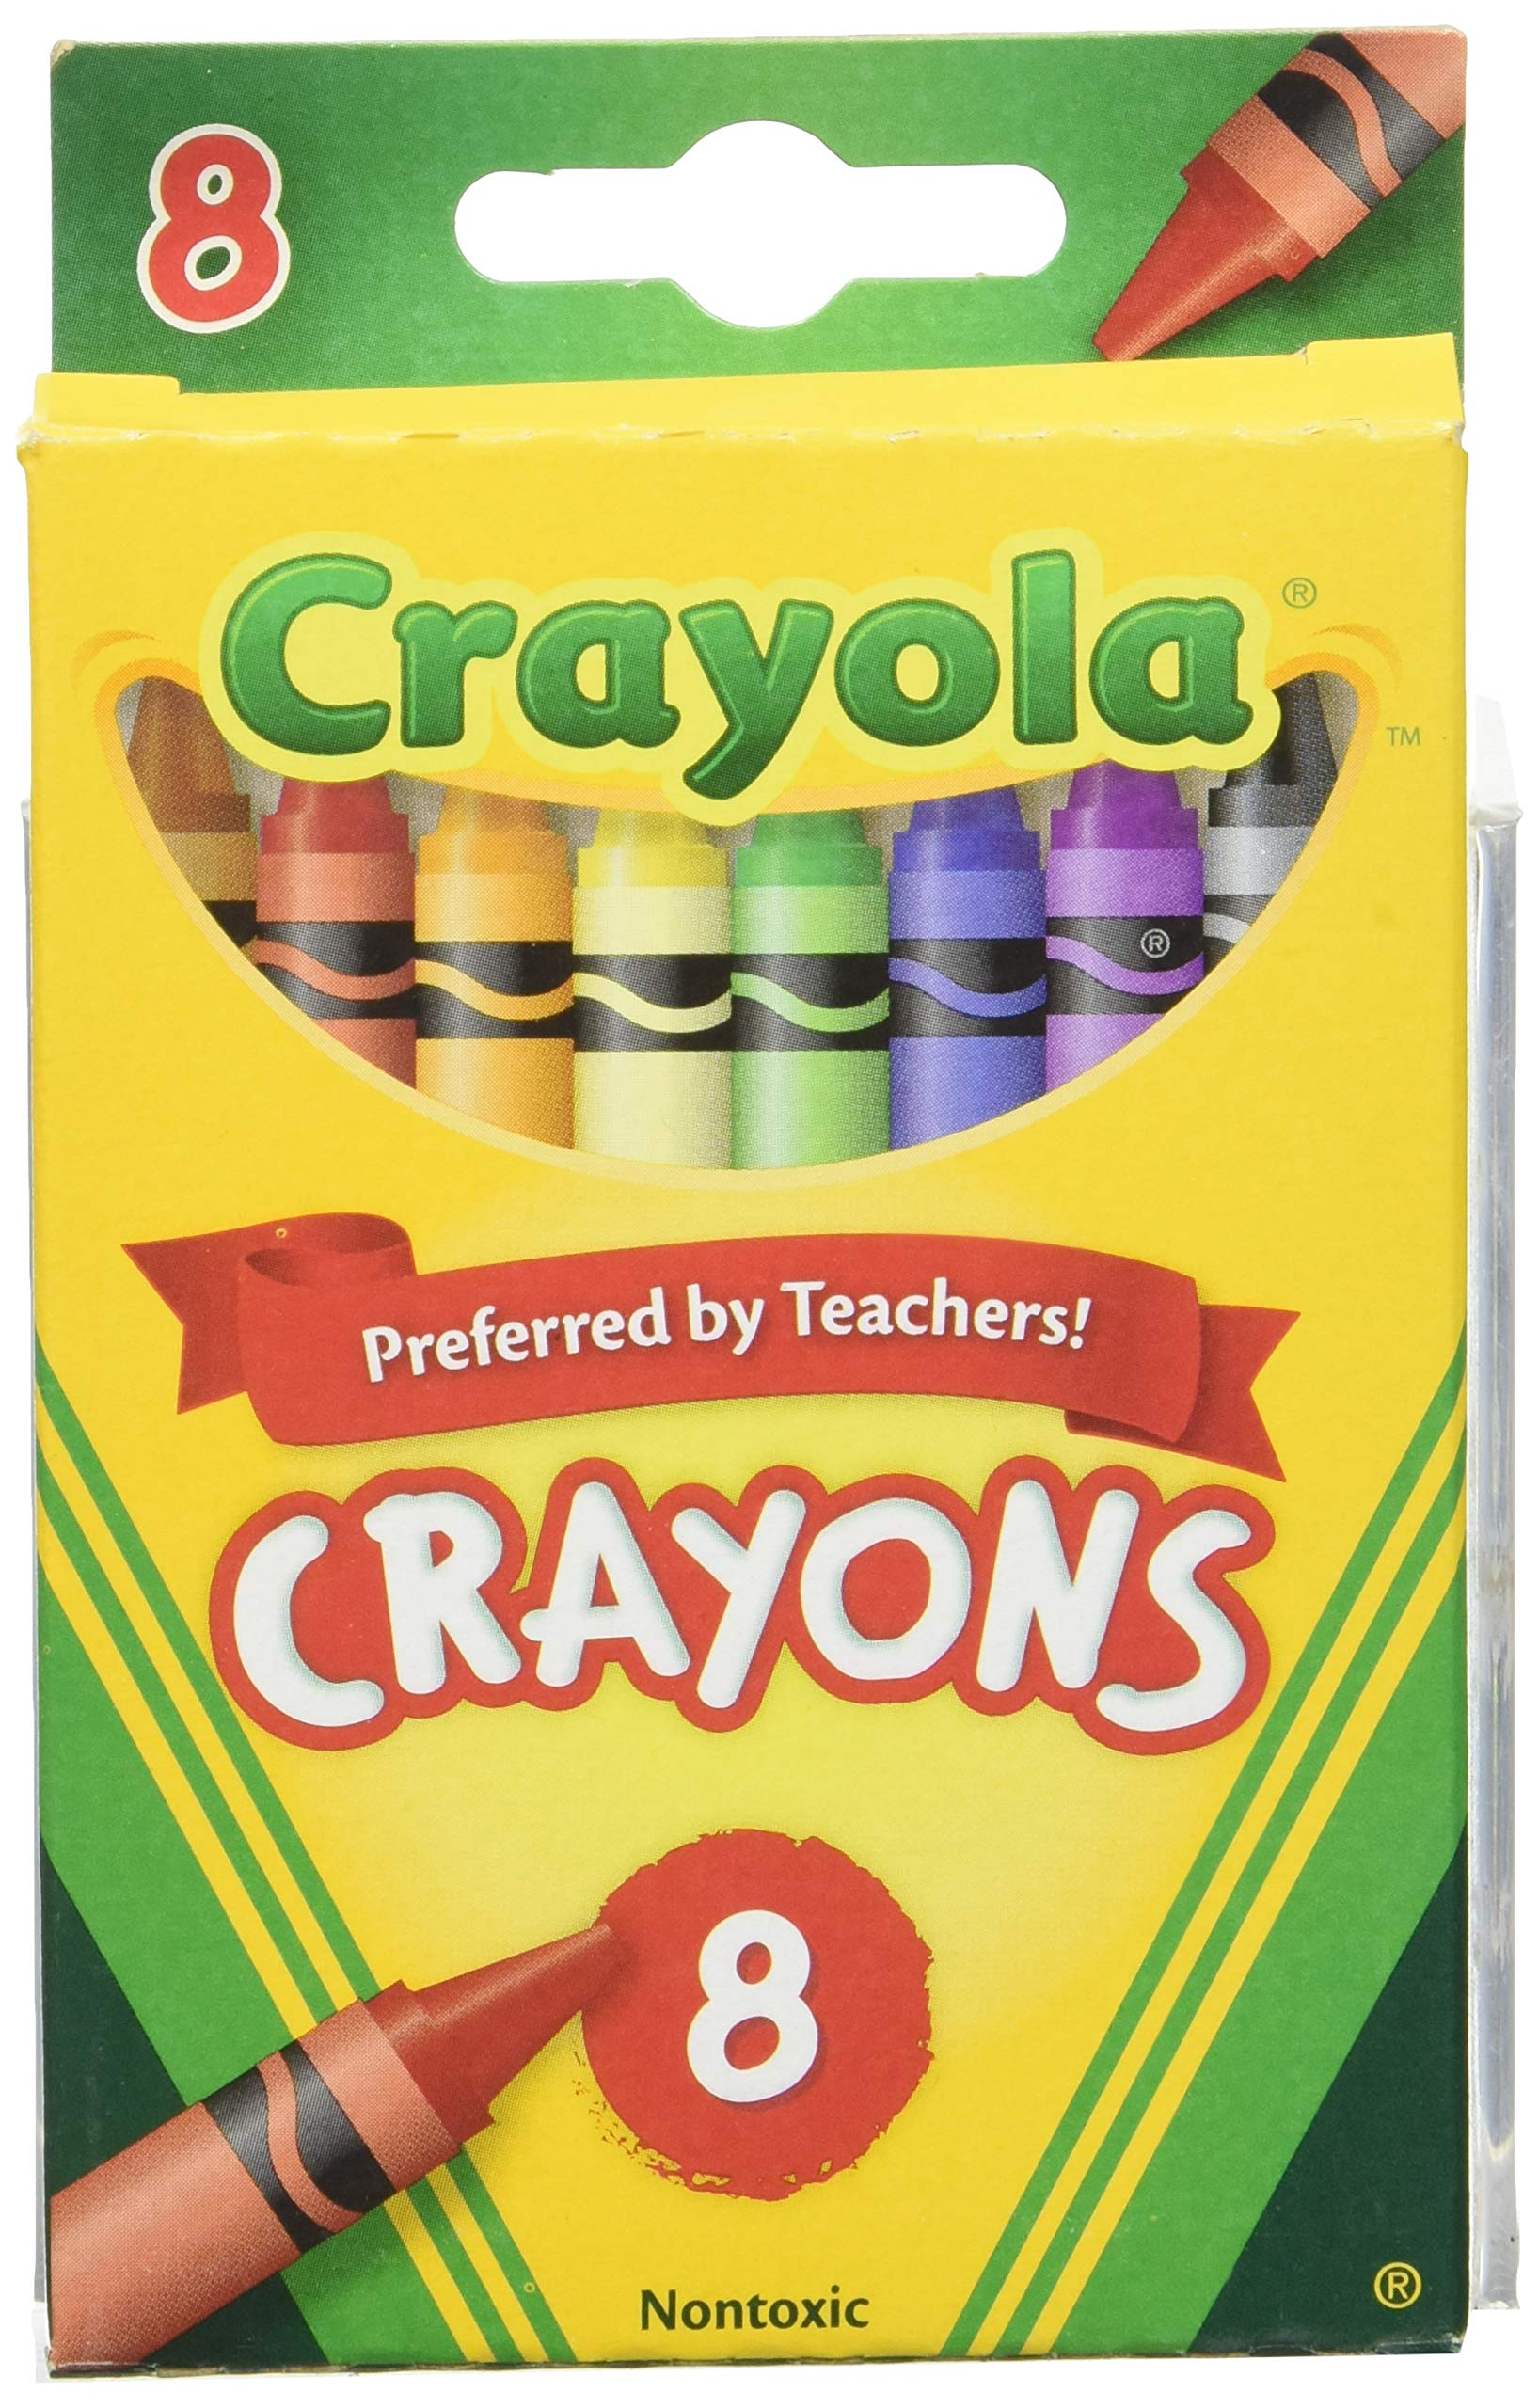 Crayola Crayons, 8 Count (Case of 48) by Crayola